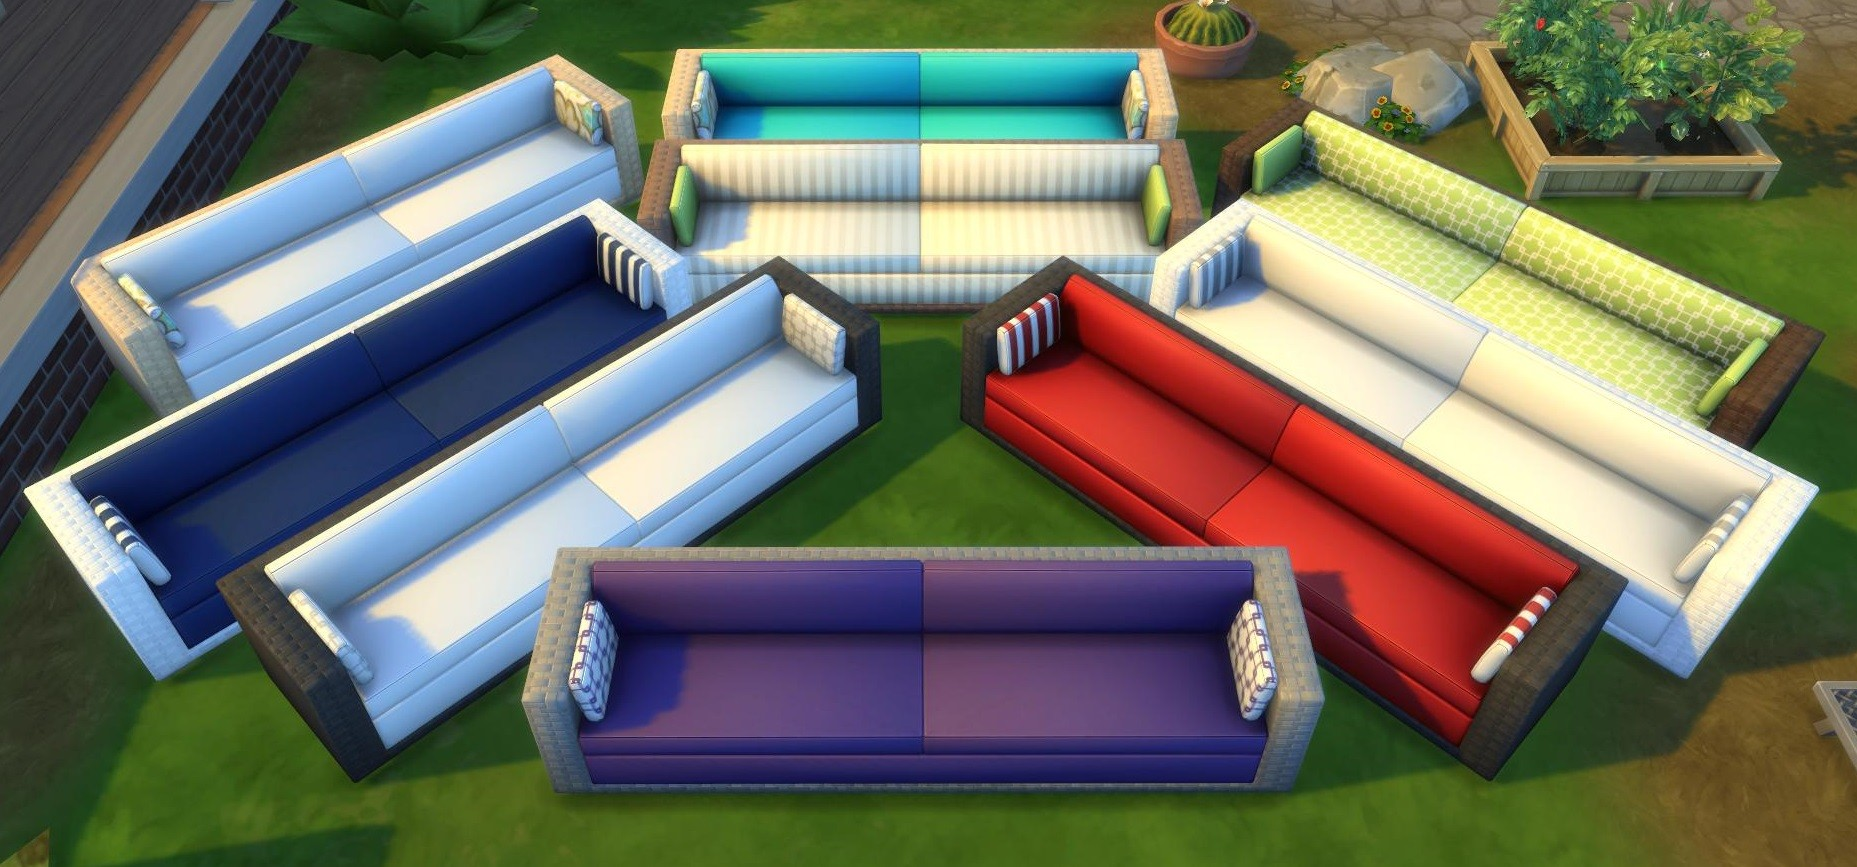 Sims 4 Ambiance Patio Meubles 04 Next Stage